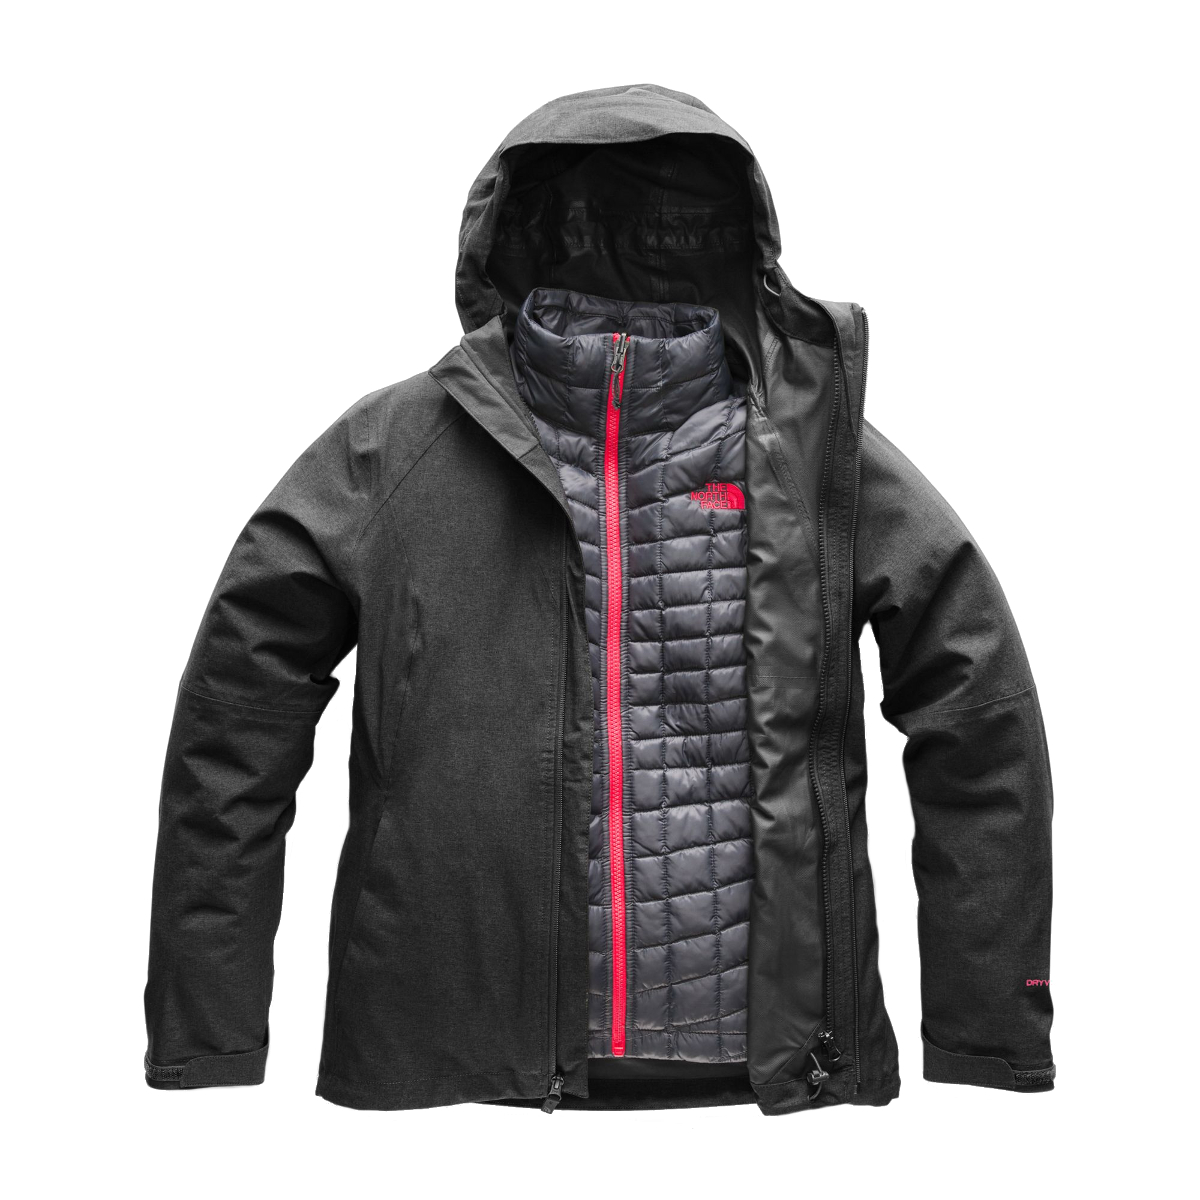 99d27ea28a Manteau 3 en 1 Thermoball Triclimate pour femme - The North Face | Latulippe